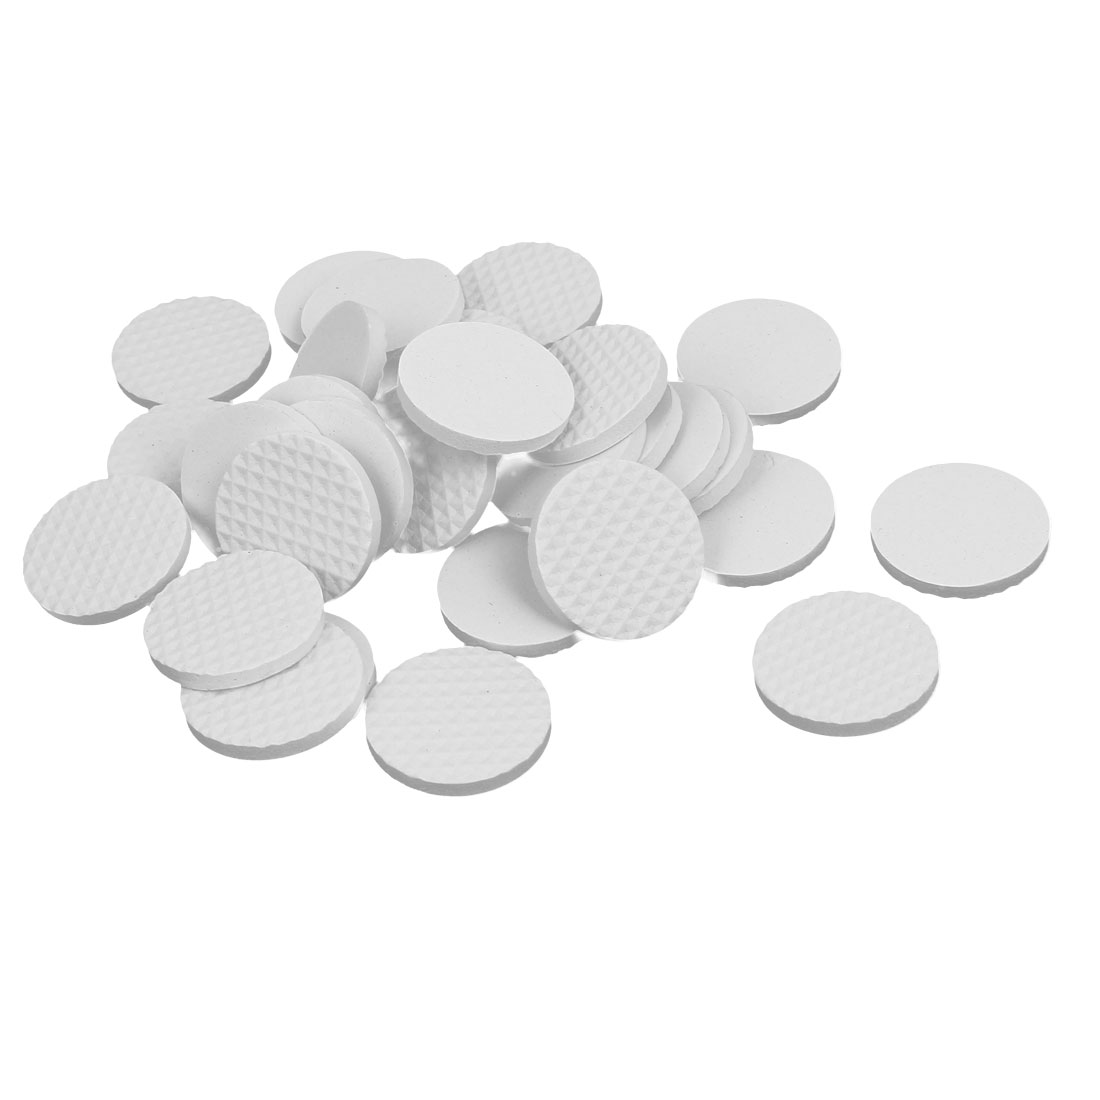 30mm Dia Rubber Self Adhesive Anti-Skid Furniture Protection Pads White 32pcs